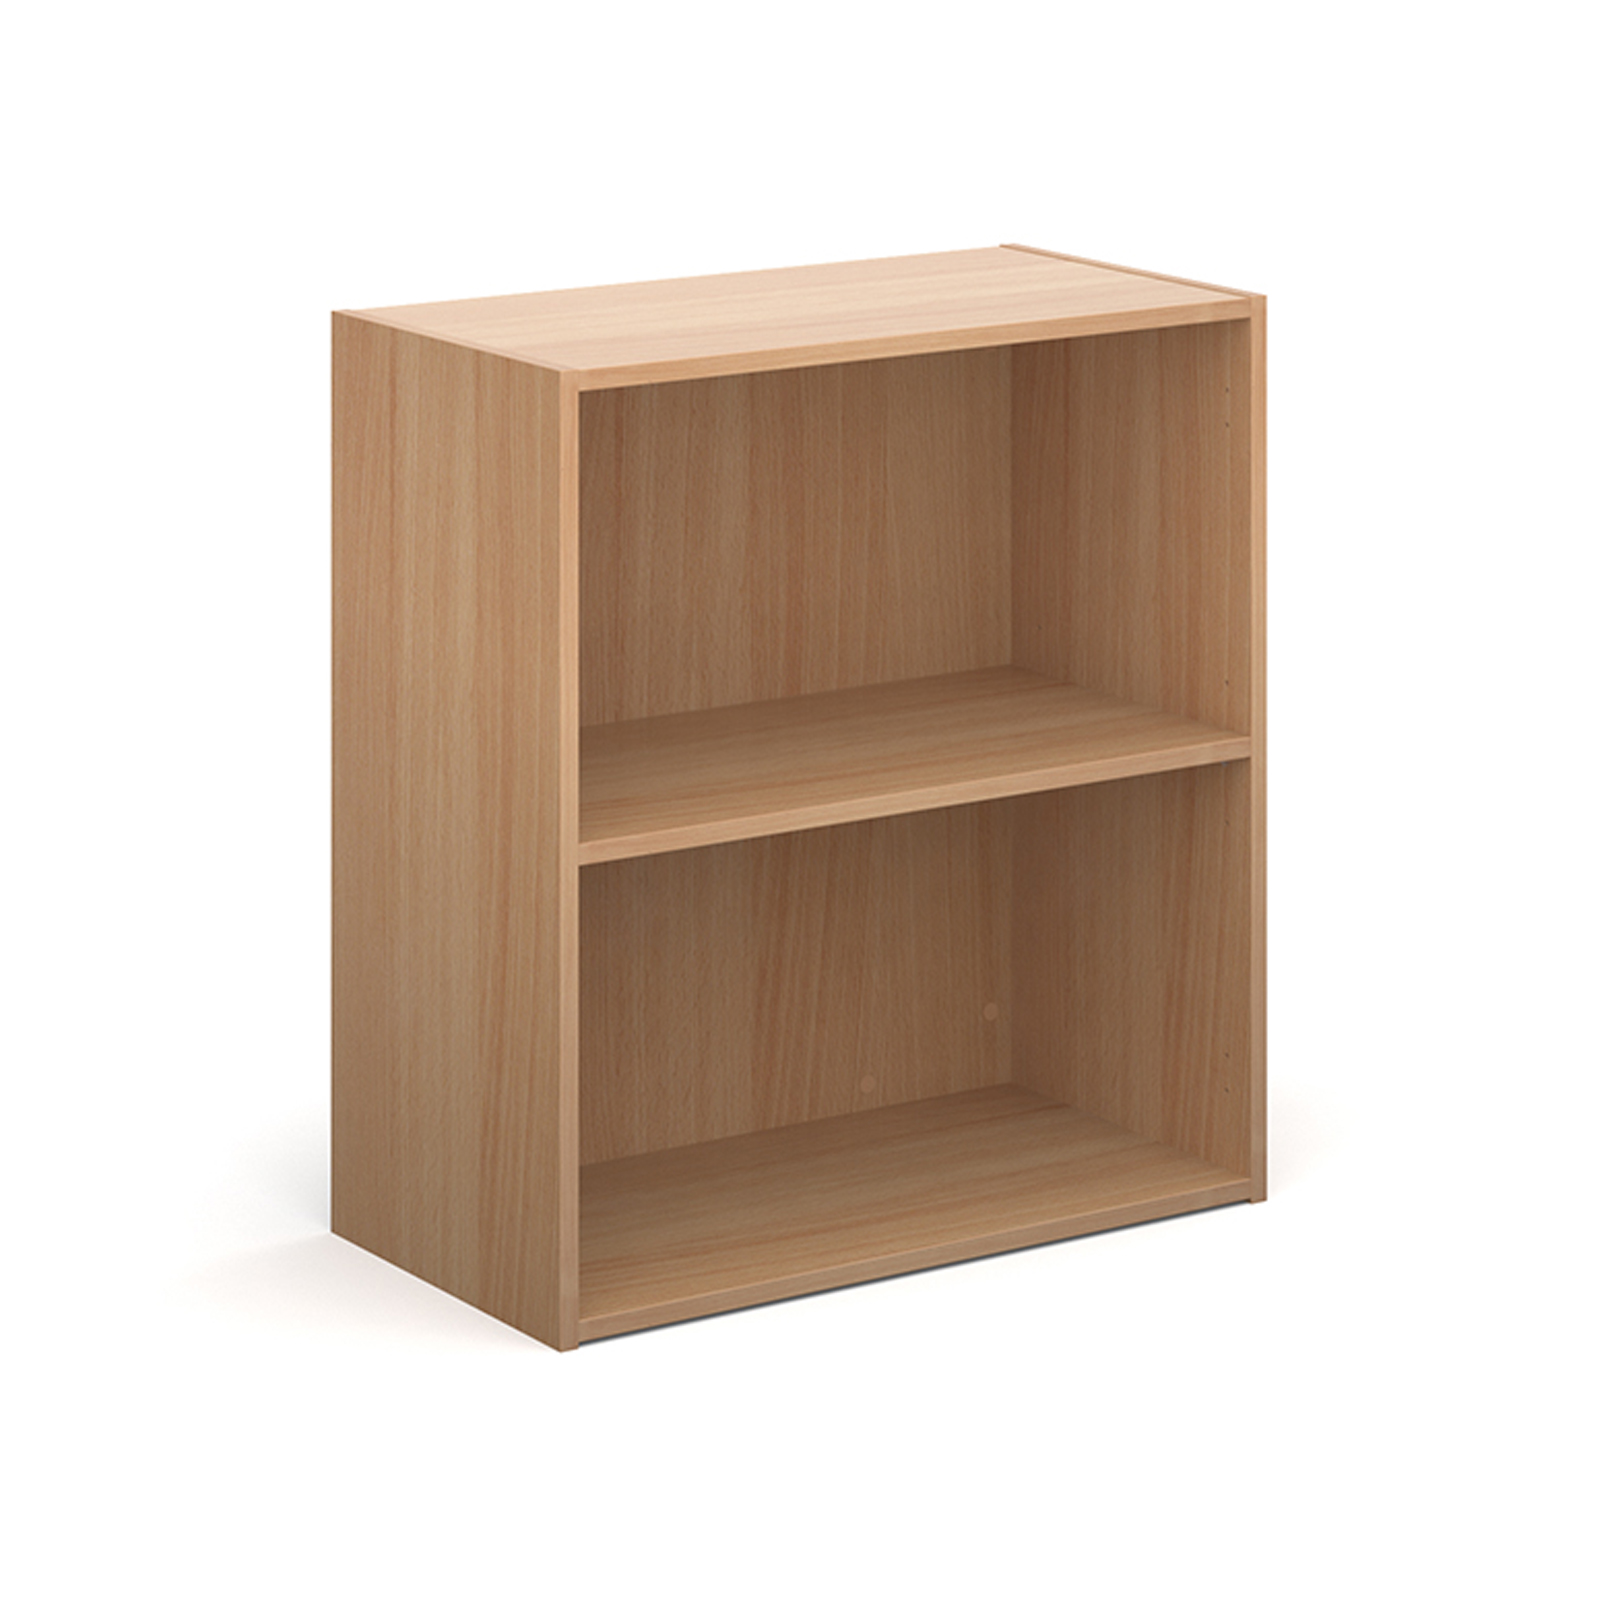 Contract bookcase 830mm high with 1 shelf - beech